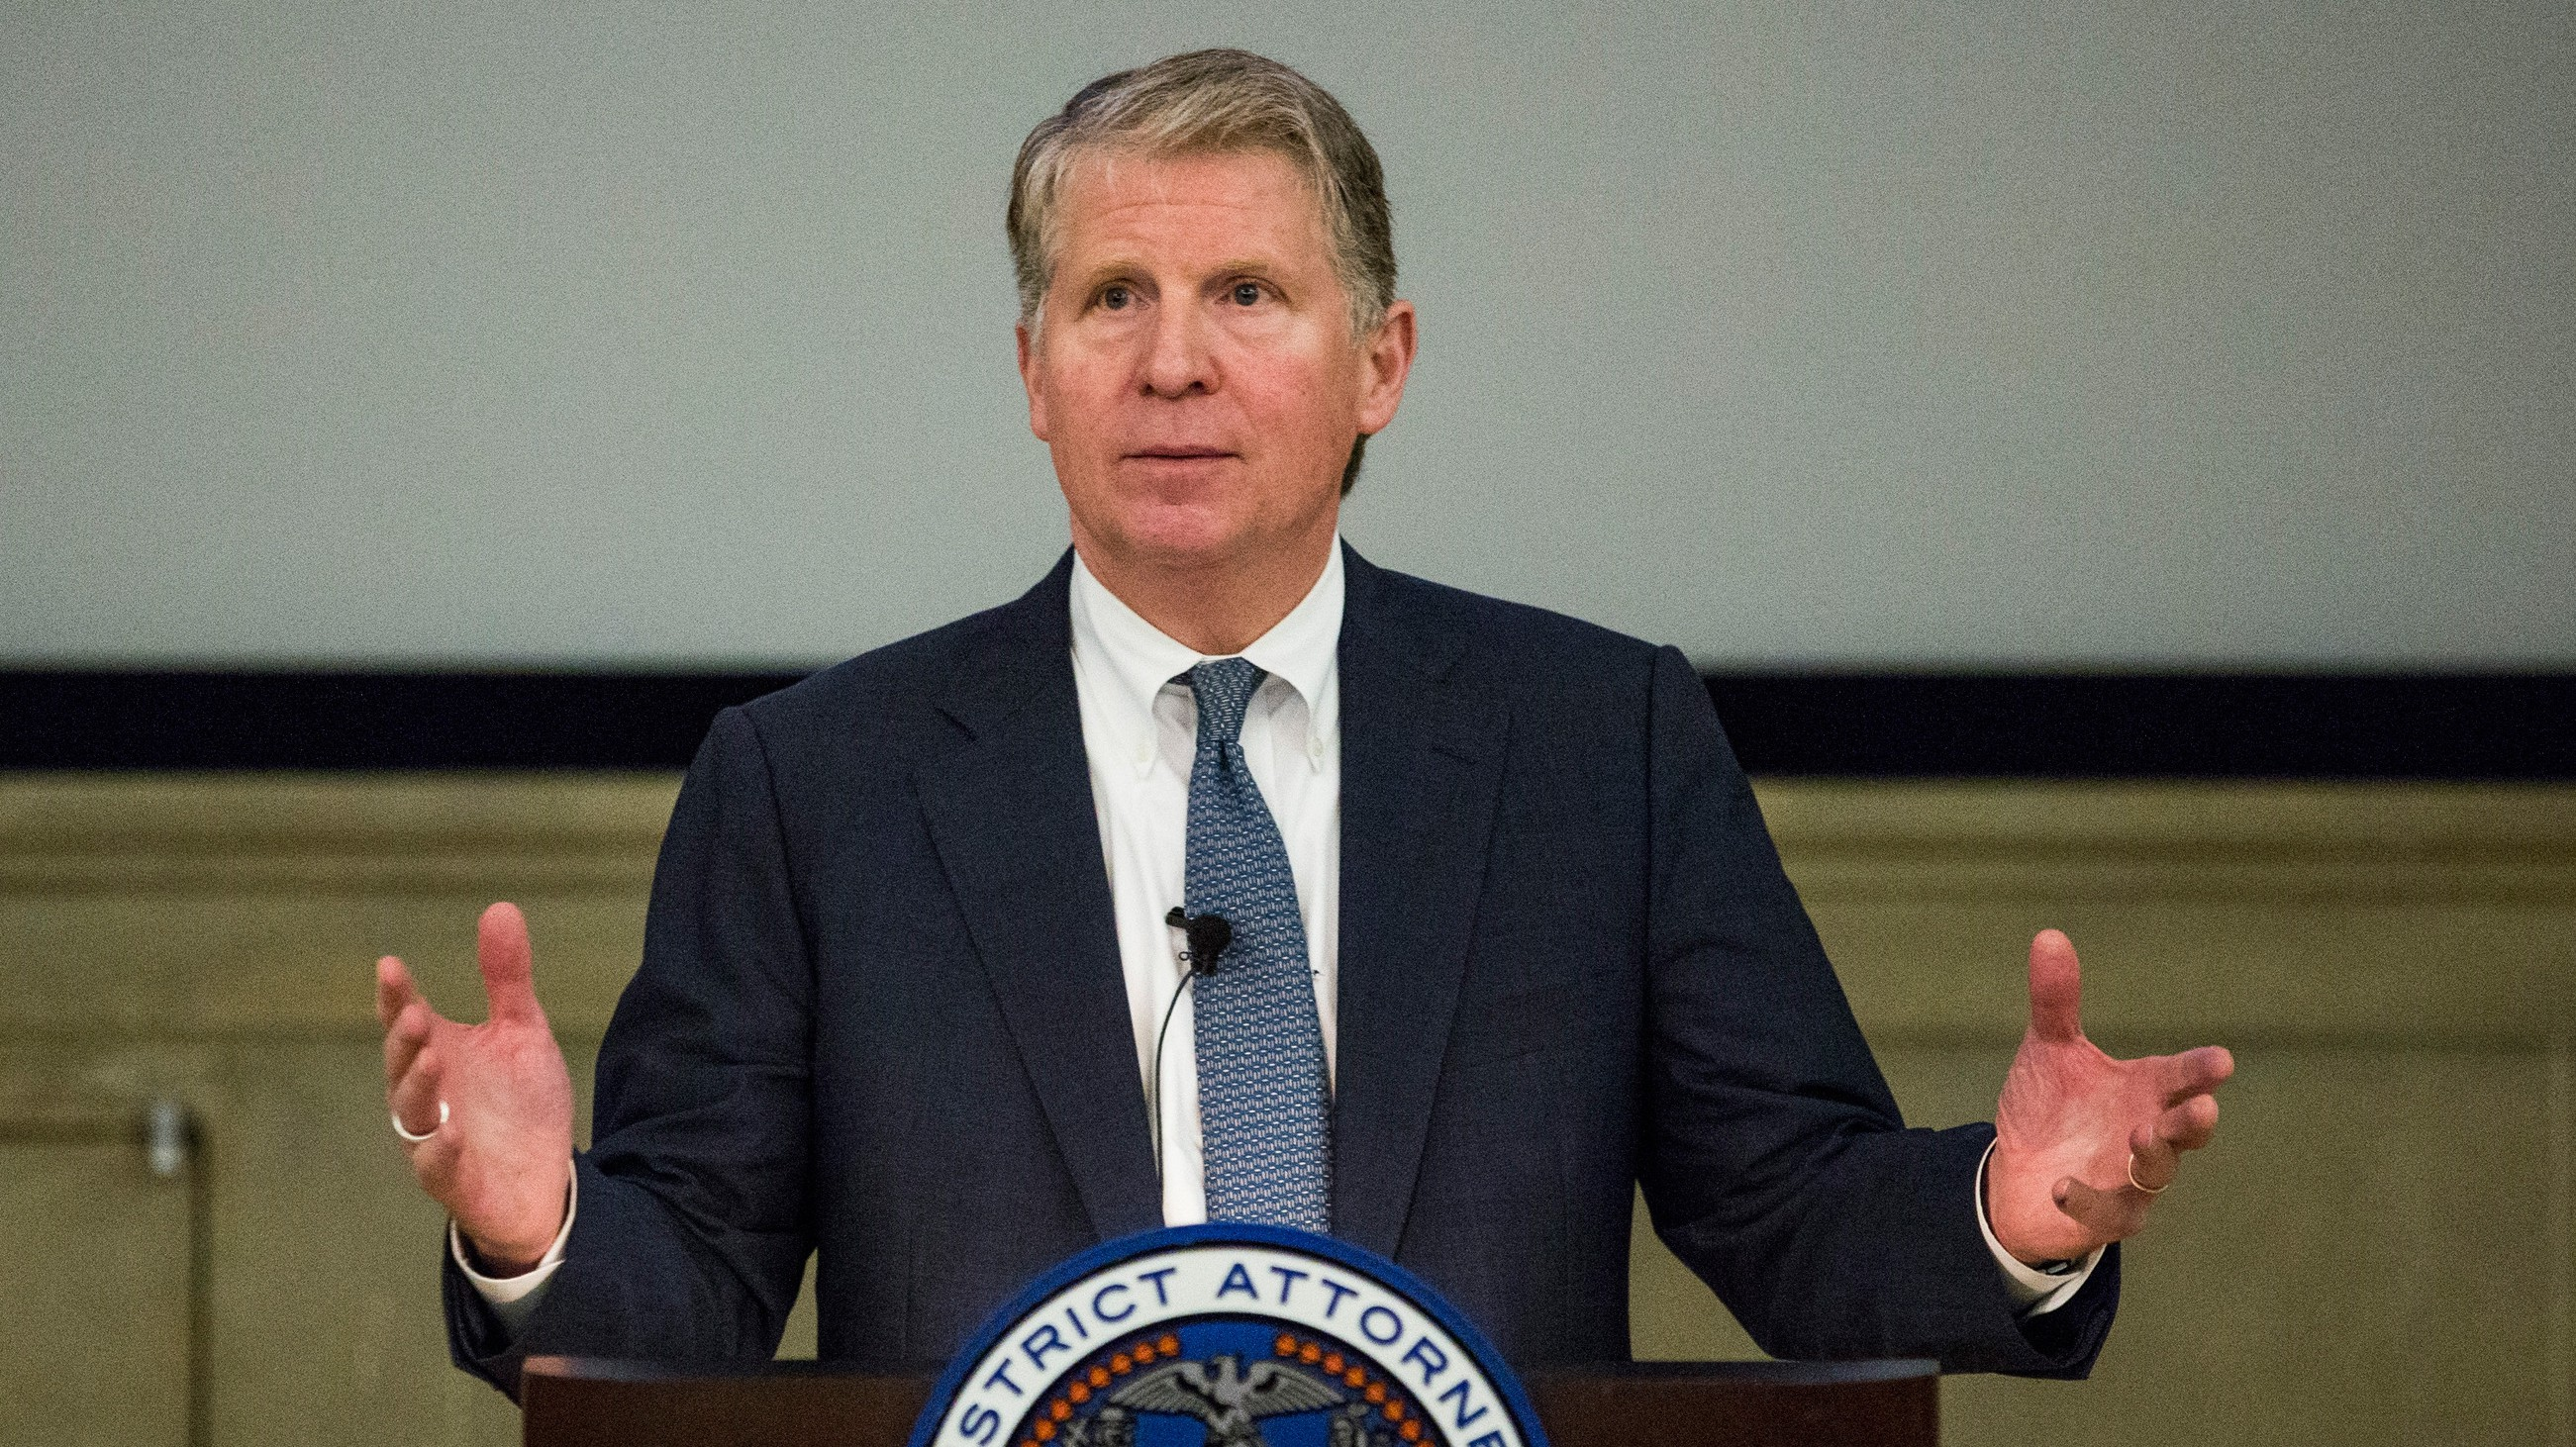 Manhattan District Attorney Cyrus Vance, Jr. speaks at global cyber security symposium at the Federal Reserve Bank of New York on November 18, 2015 in New York City.  (Andrew Burton/Getty)